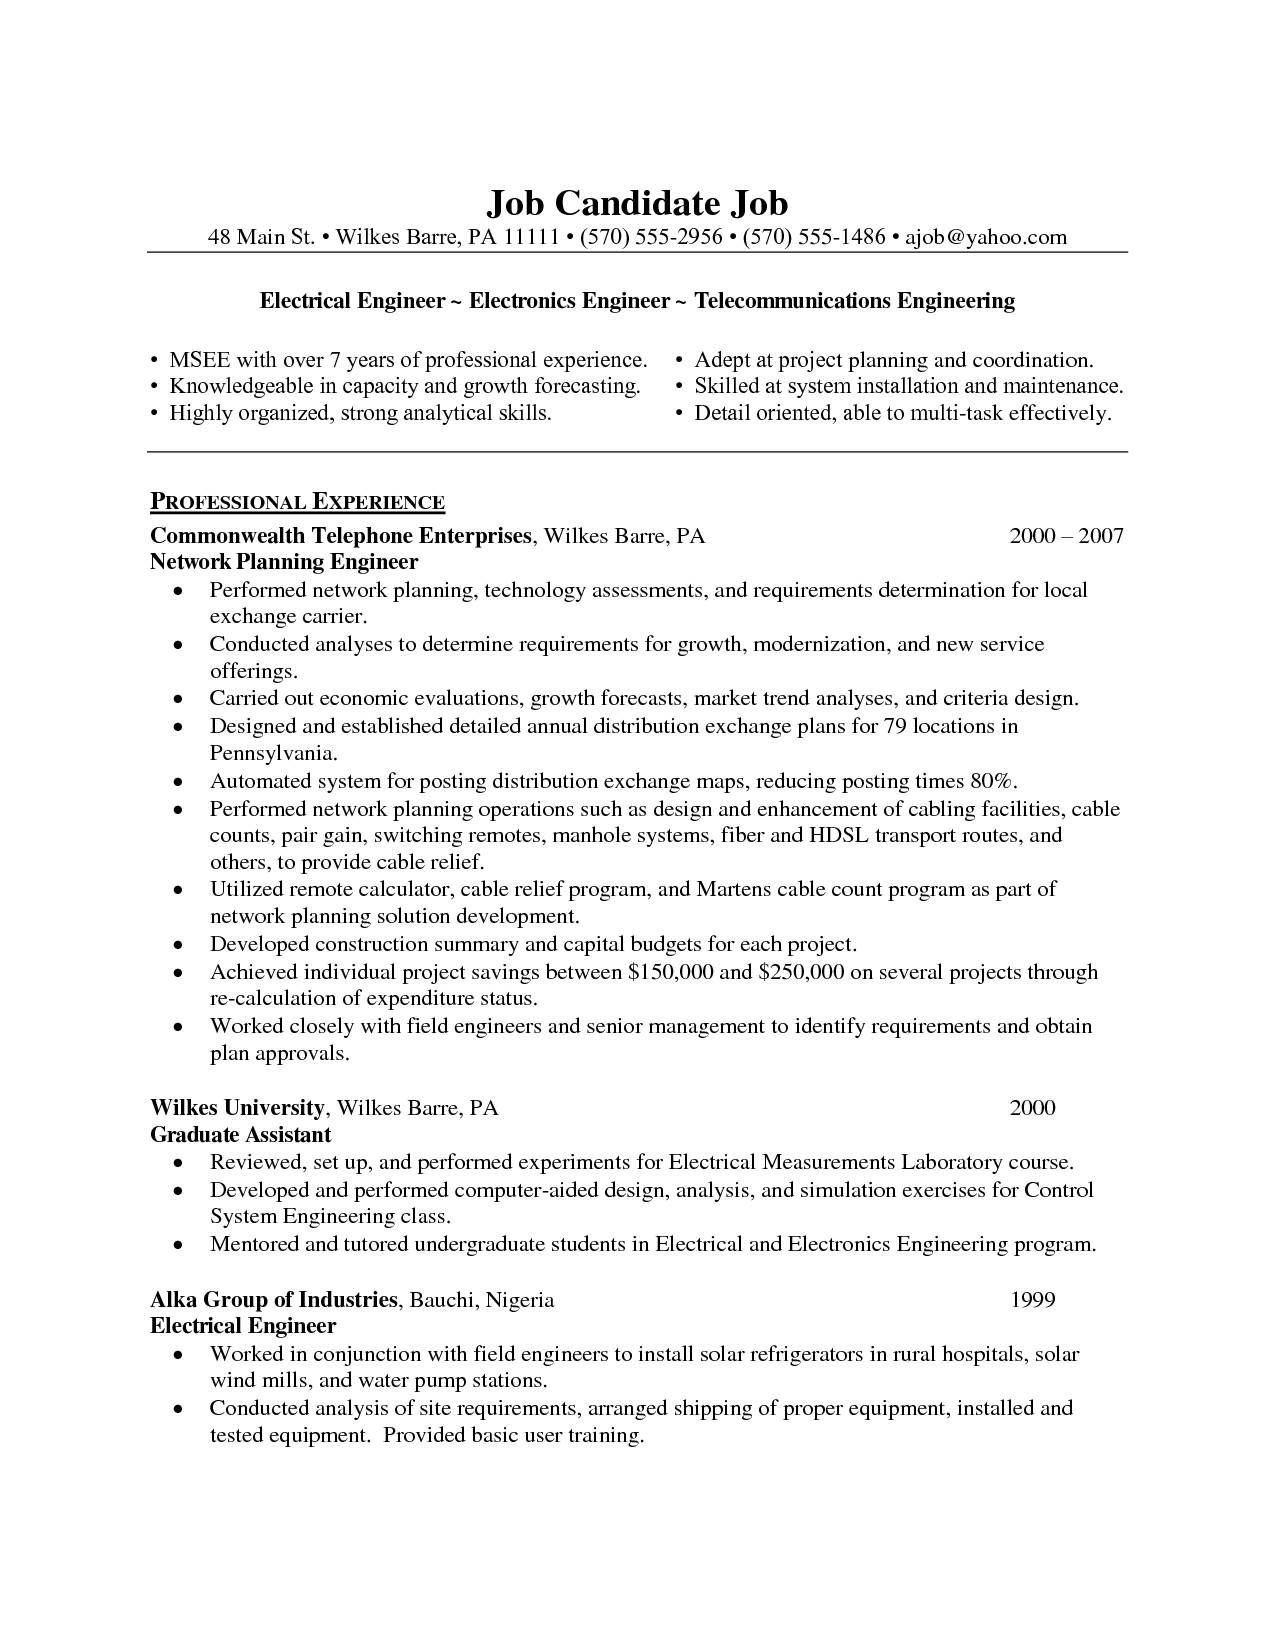 resume templates 2019 best in 2020 (with images) sample template professional word colorful fresher software engineer doc